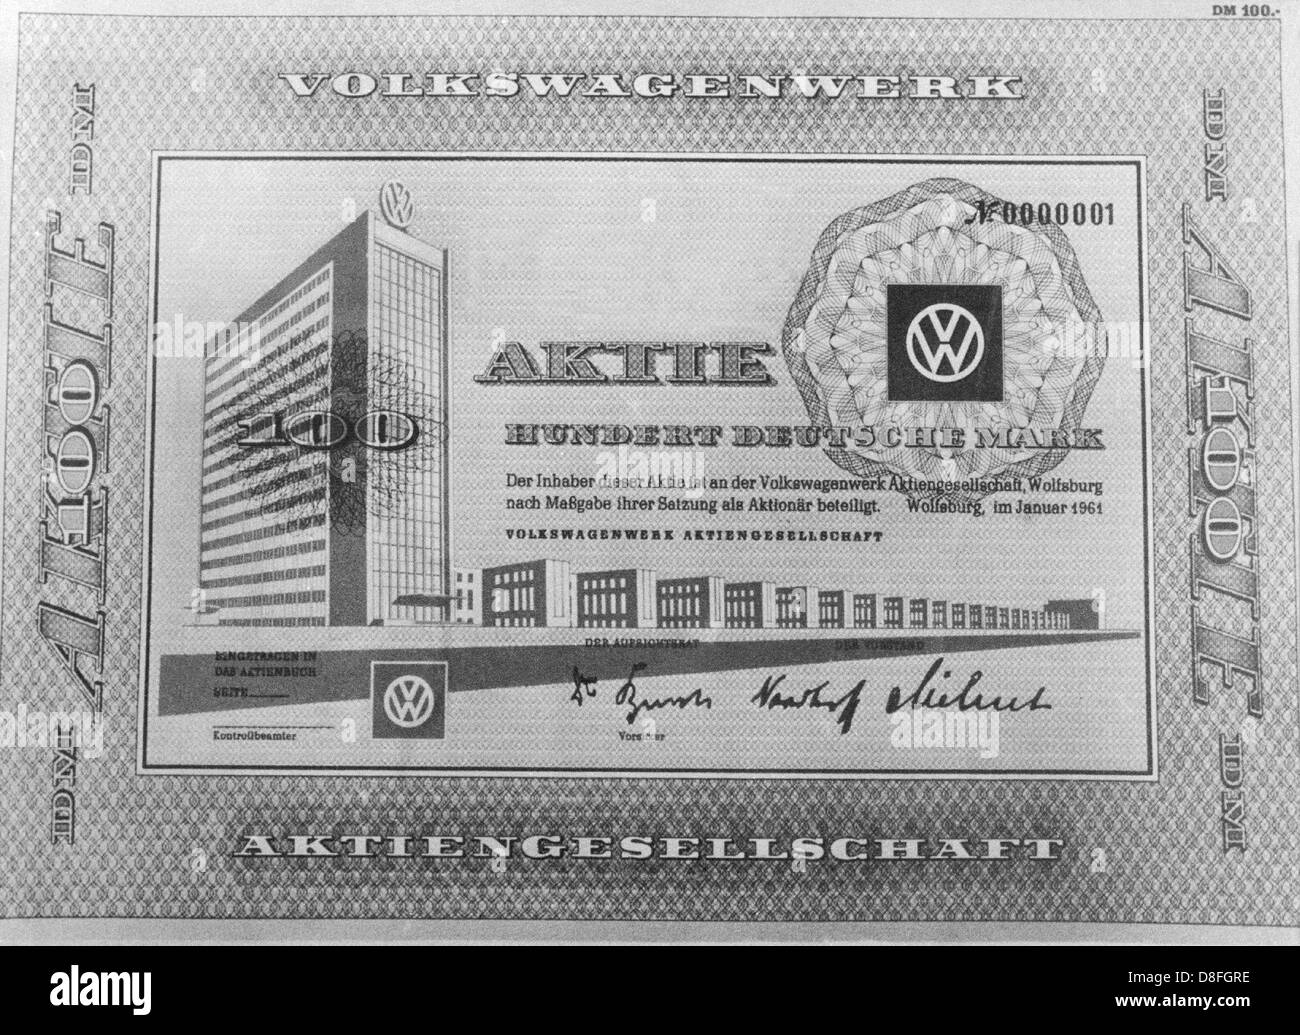 Picture of a VW people's stock worth one hundred mark from 1961. - Stock Image